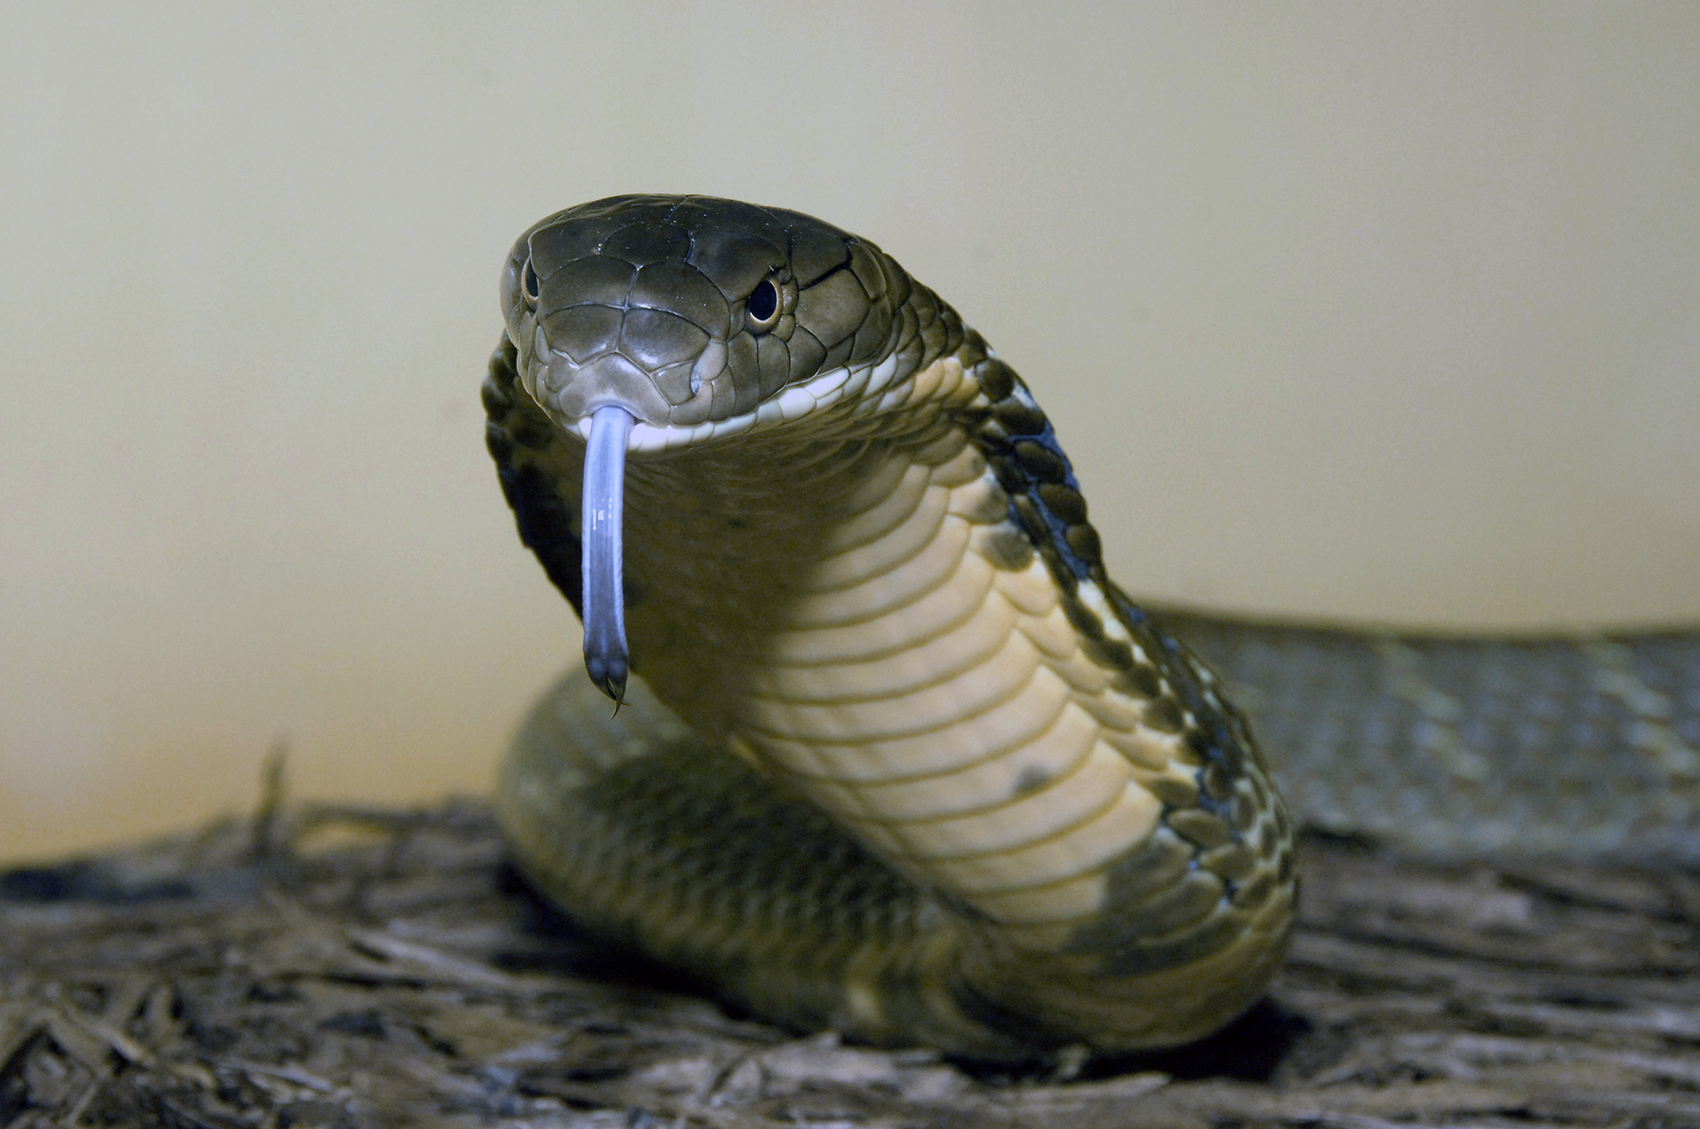 King Cobra in Name Only? | Wild View